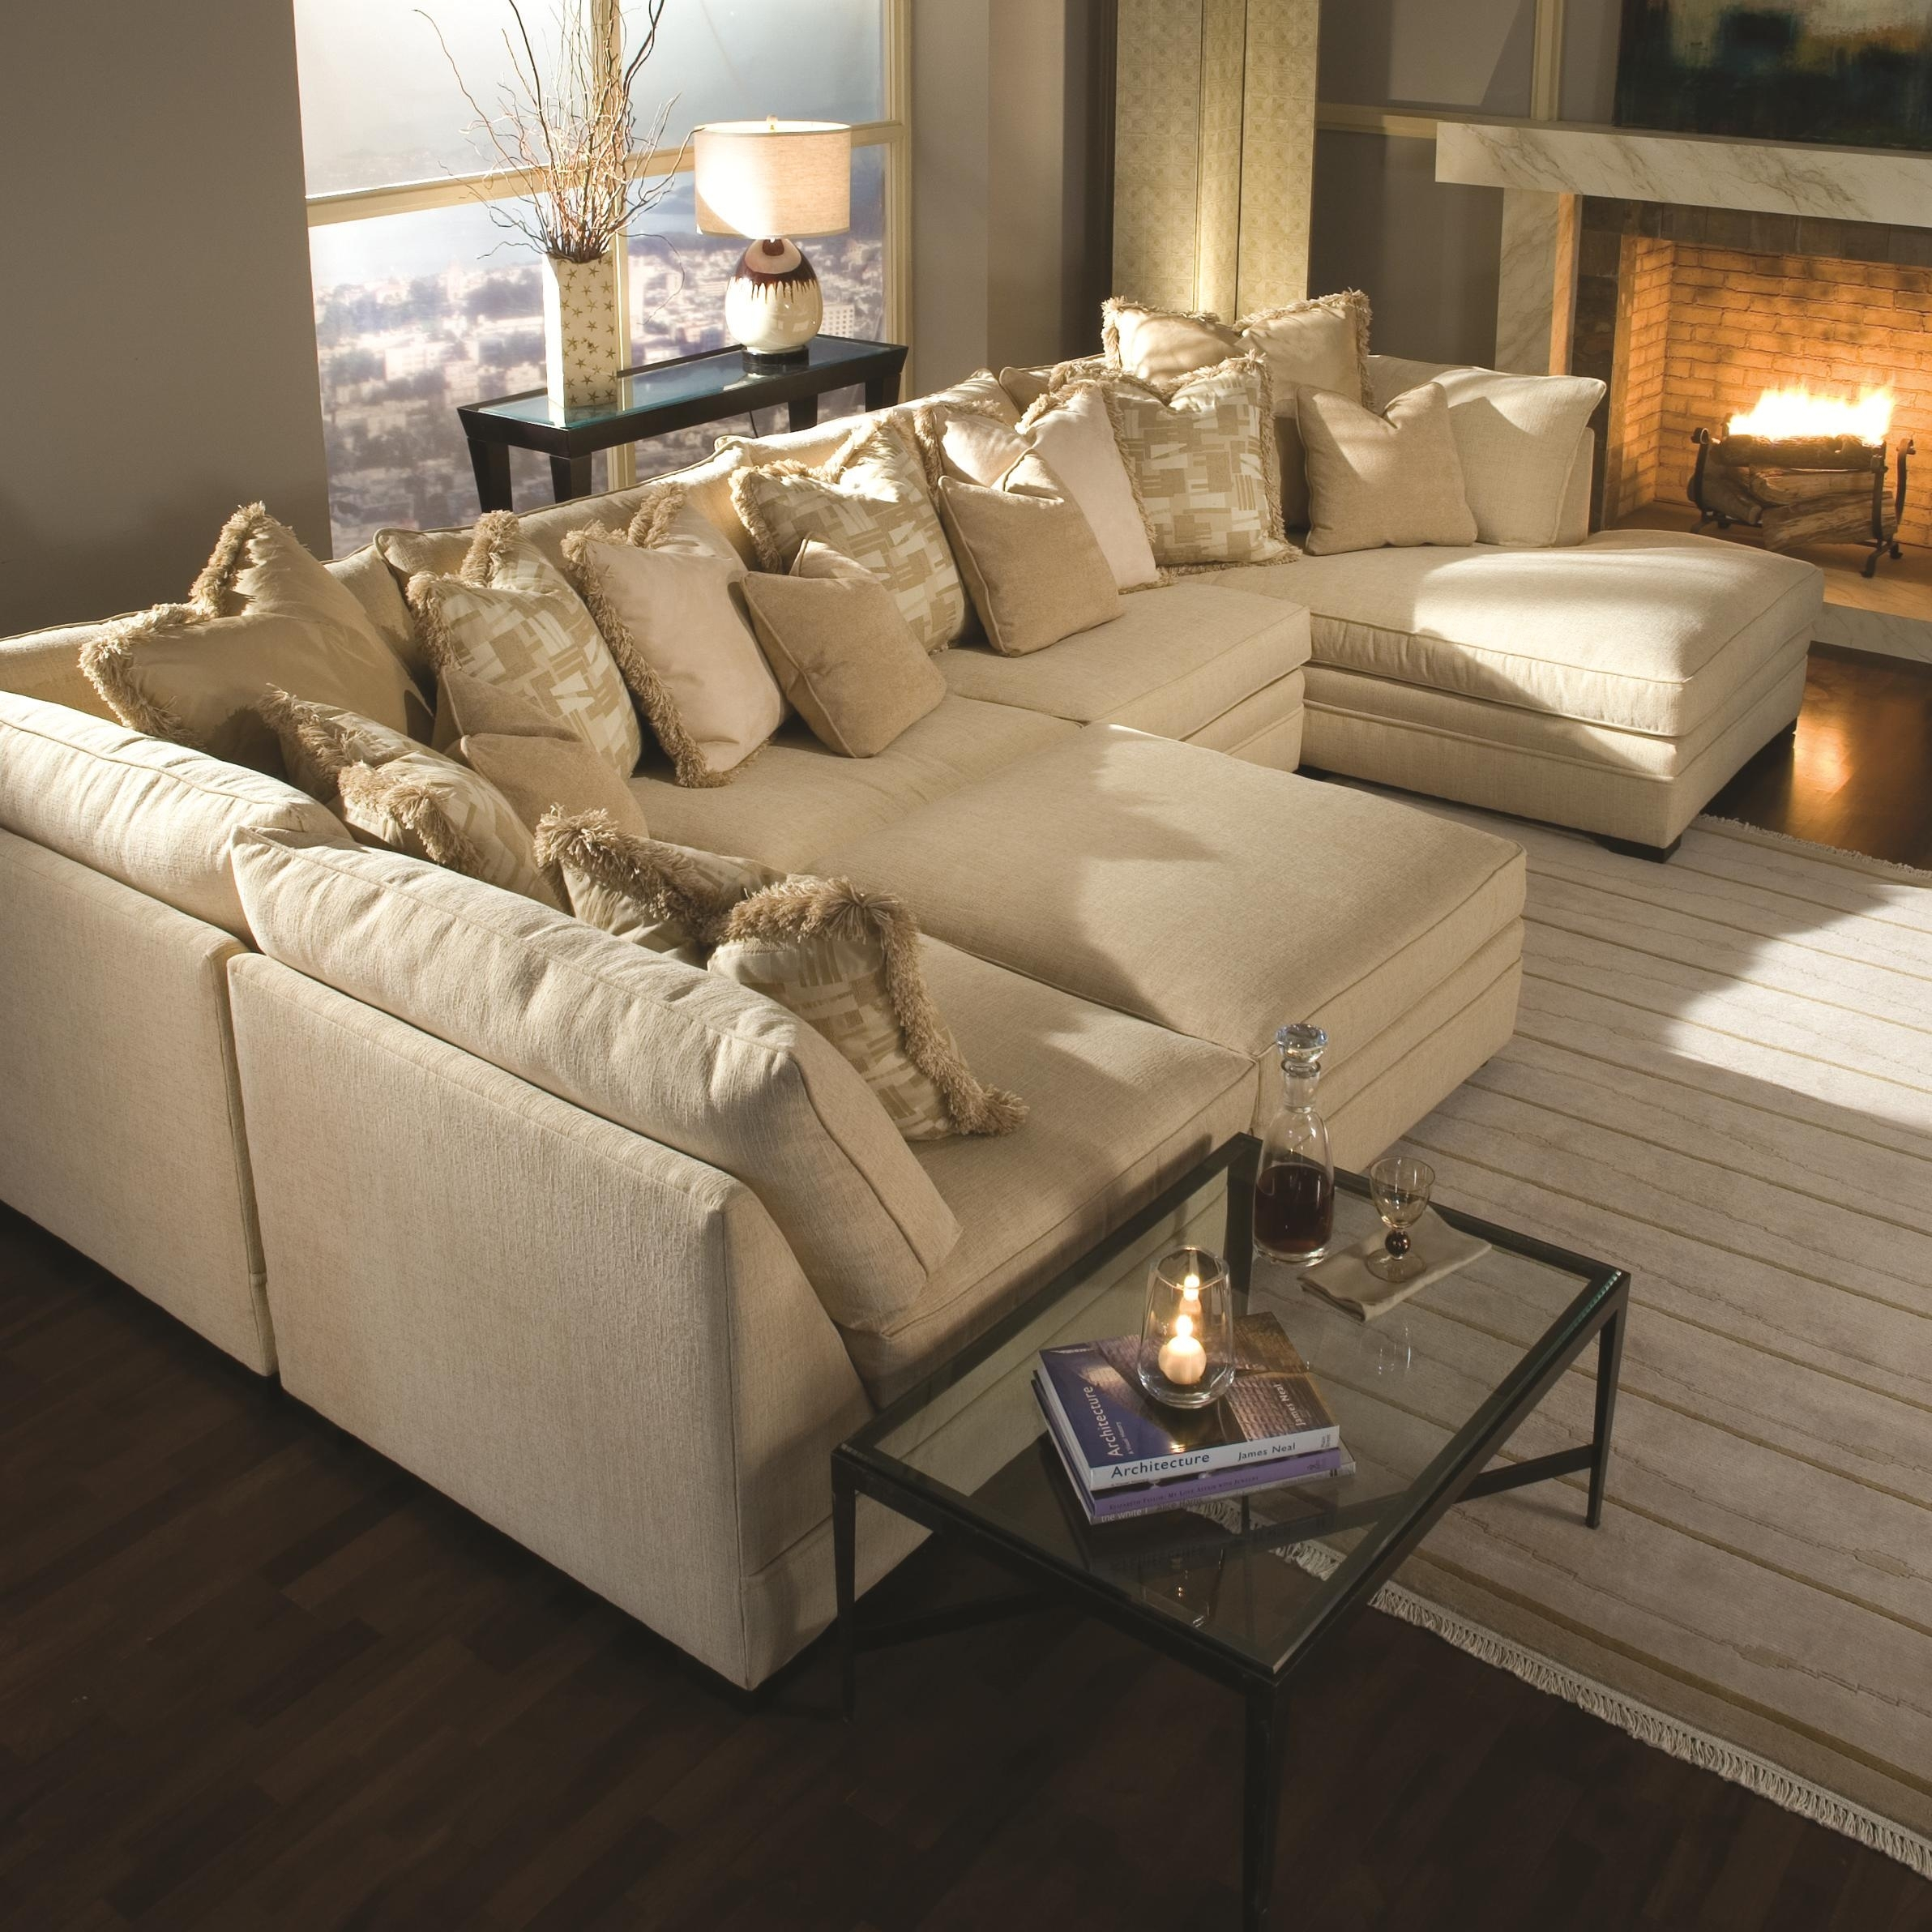 Sectional Sofas Mississauga | Functionalities regarding Mississauga Sectional Sofas (Image 9 of 10)